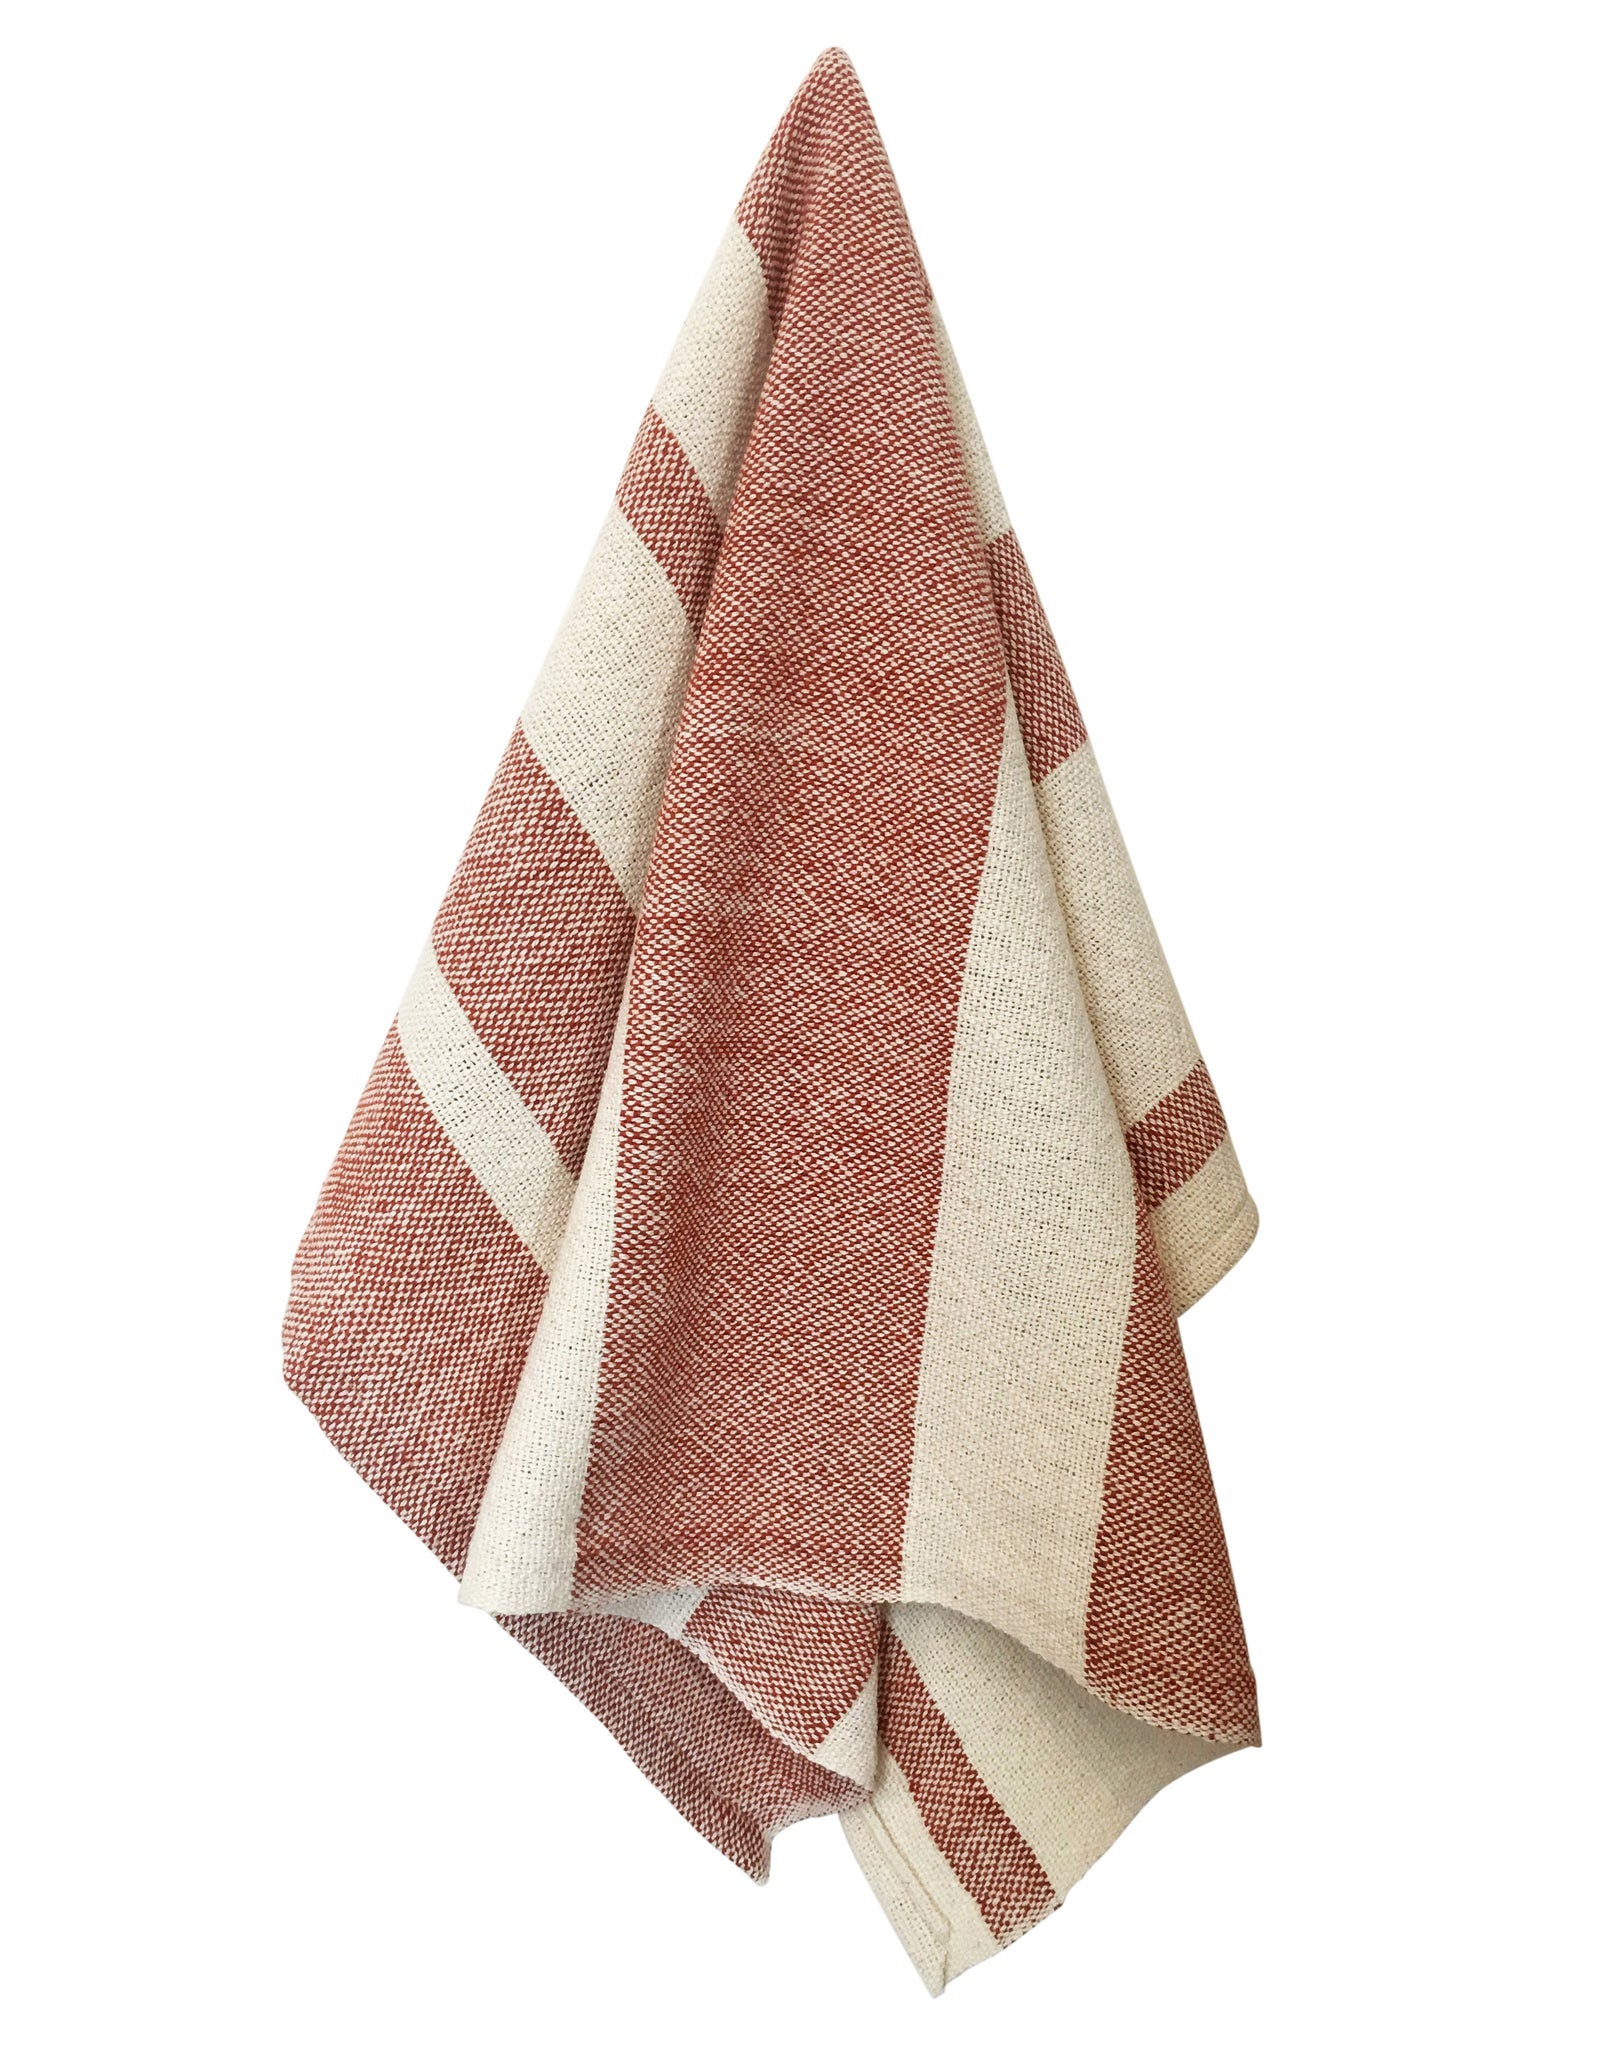 Everyday Tea Towel - Sienna